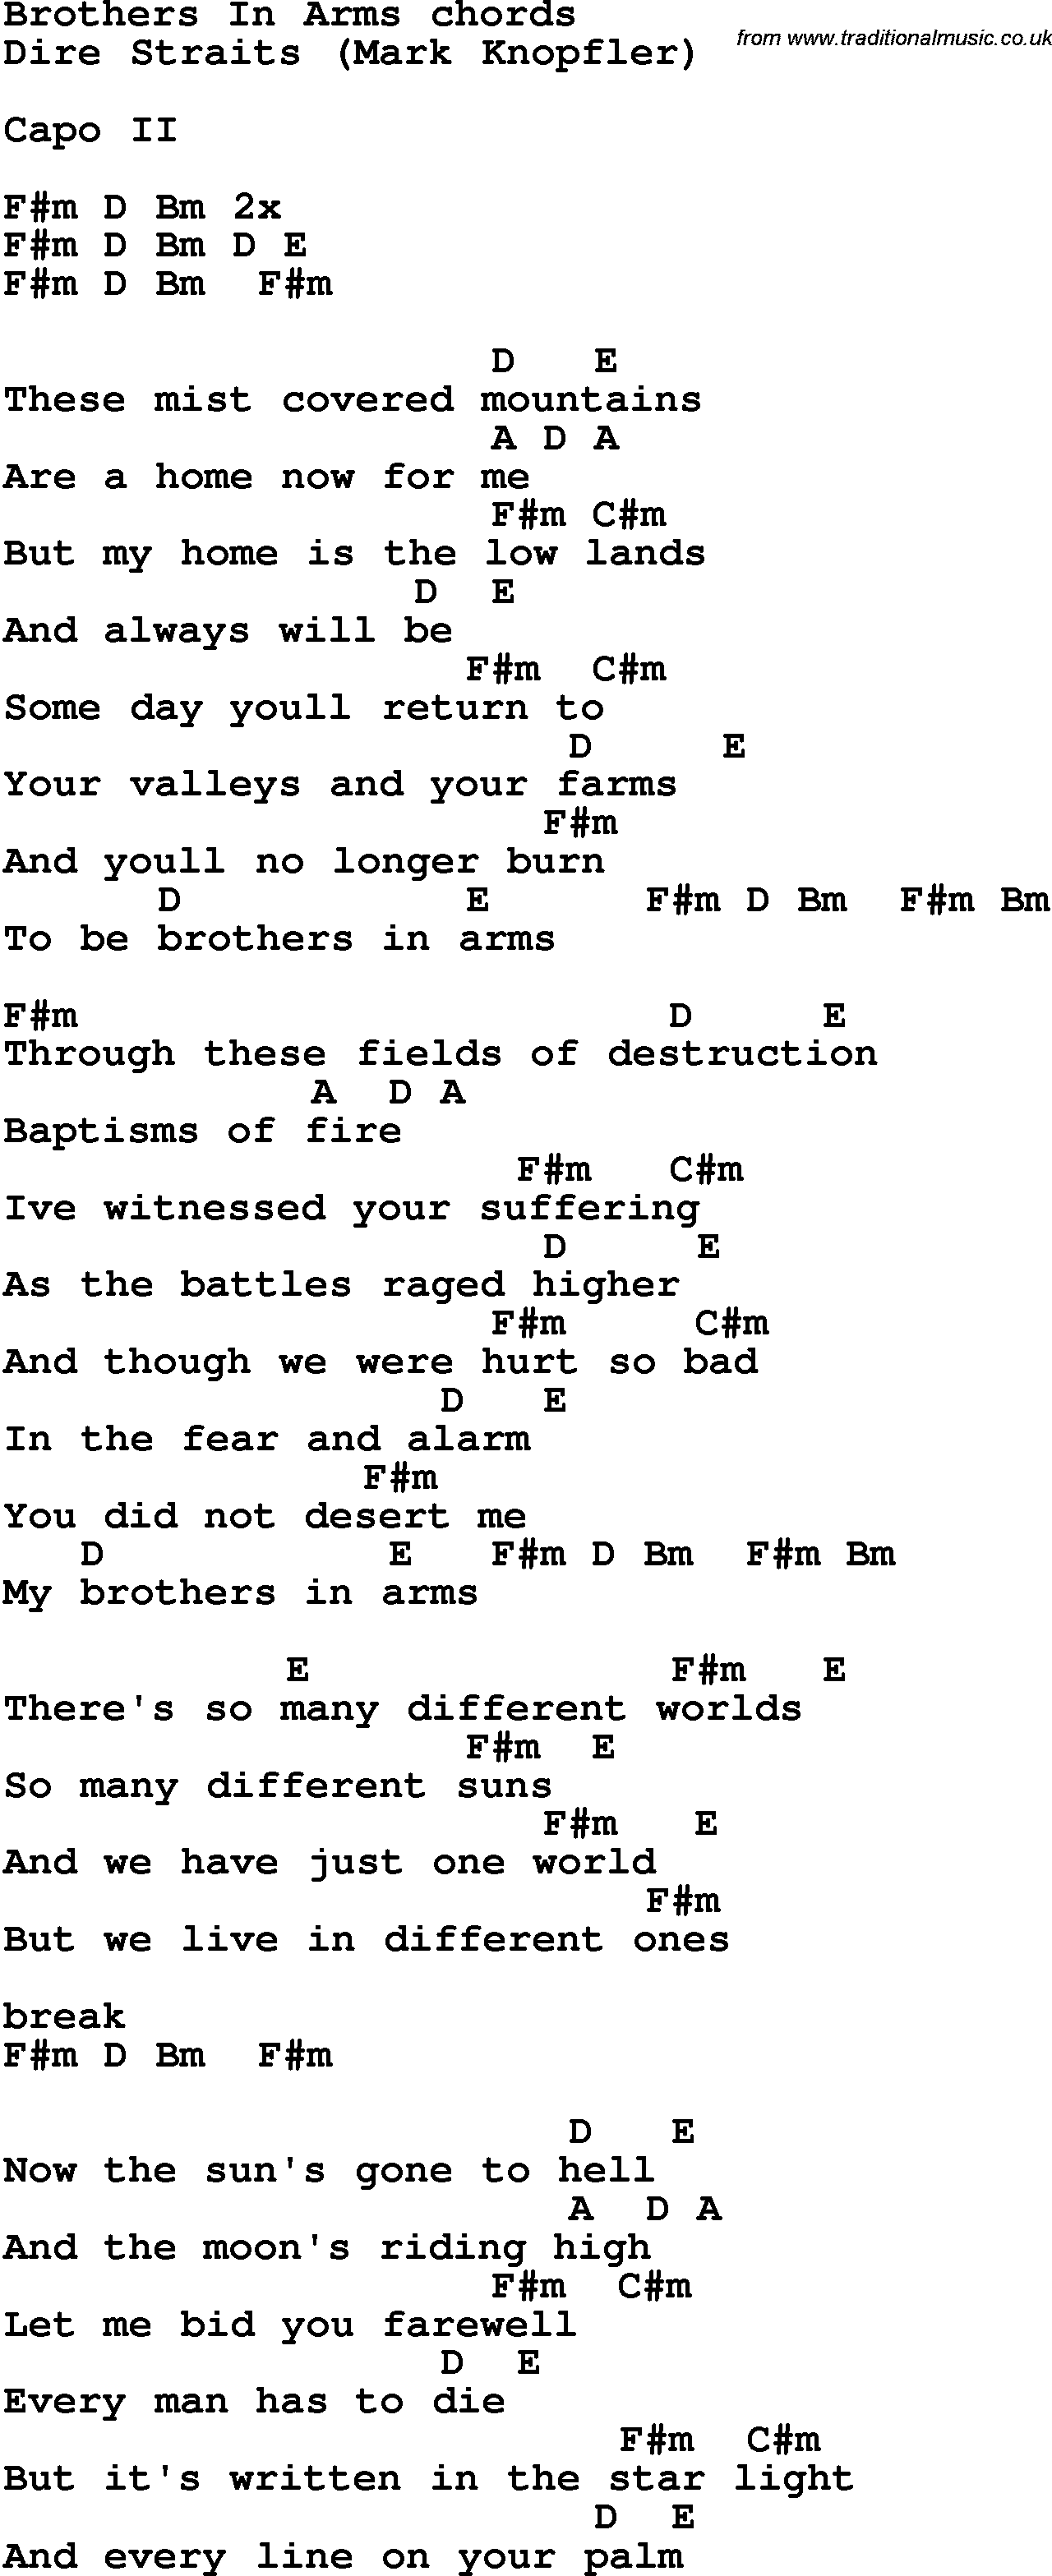 Song Lyrics With Guitar Chords For Brothers In Arms